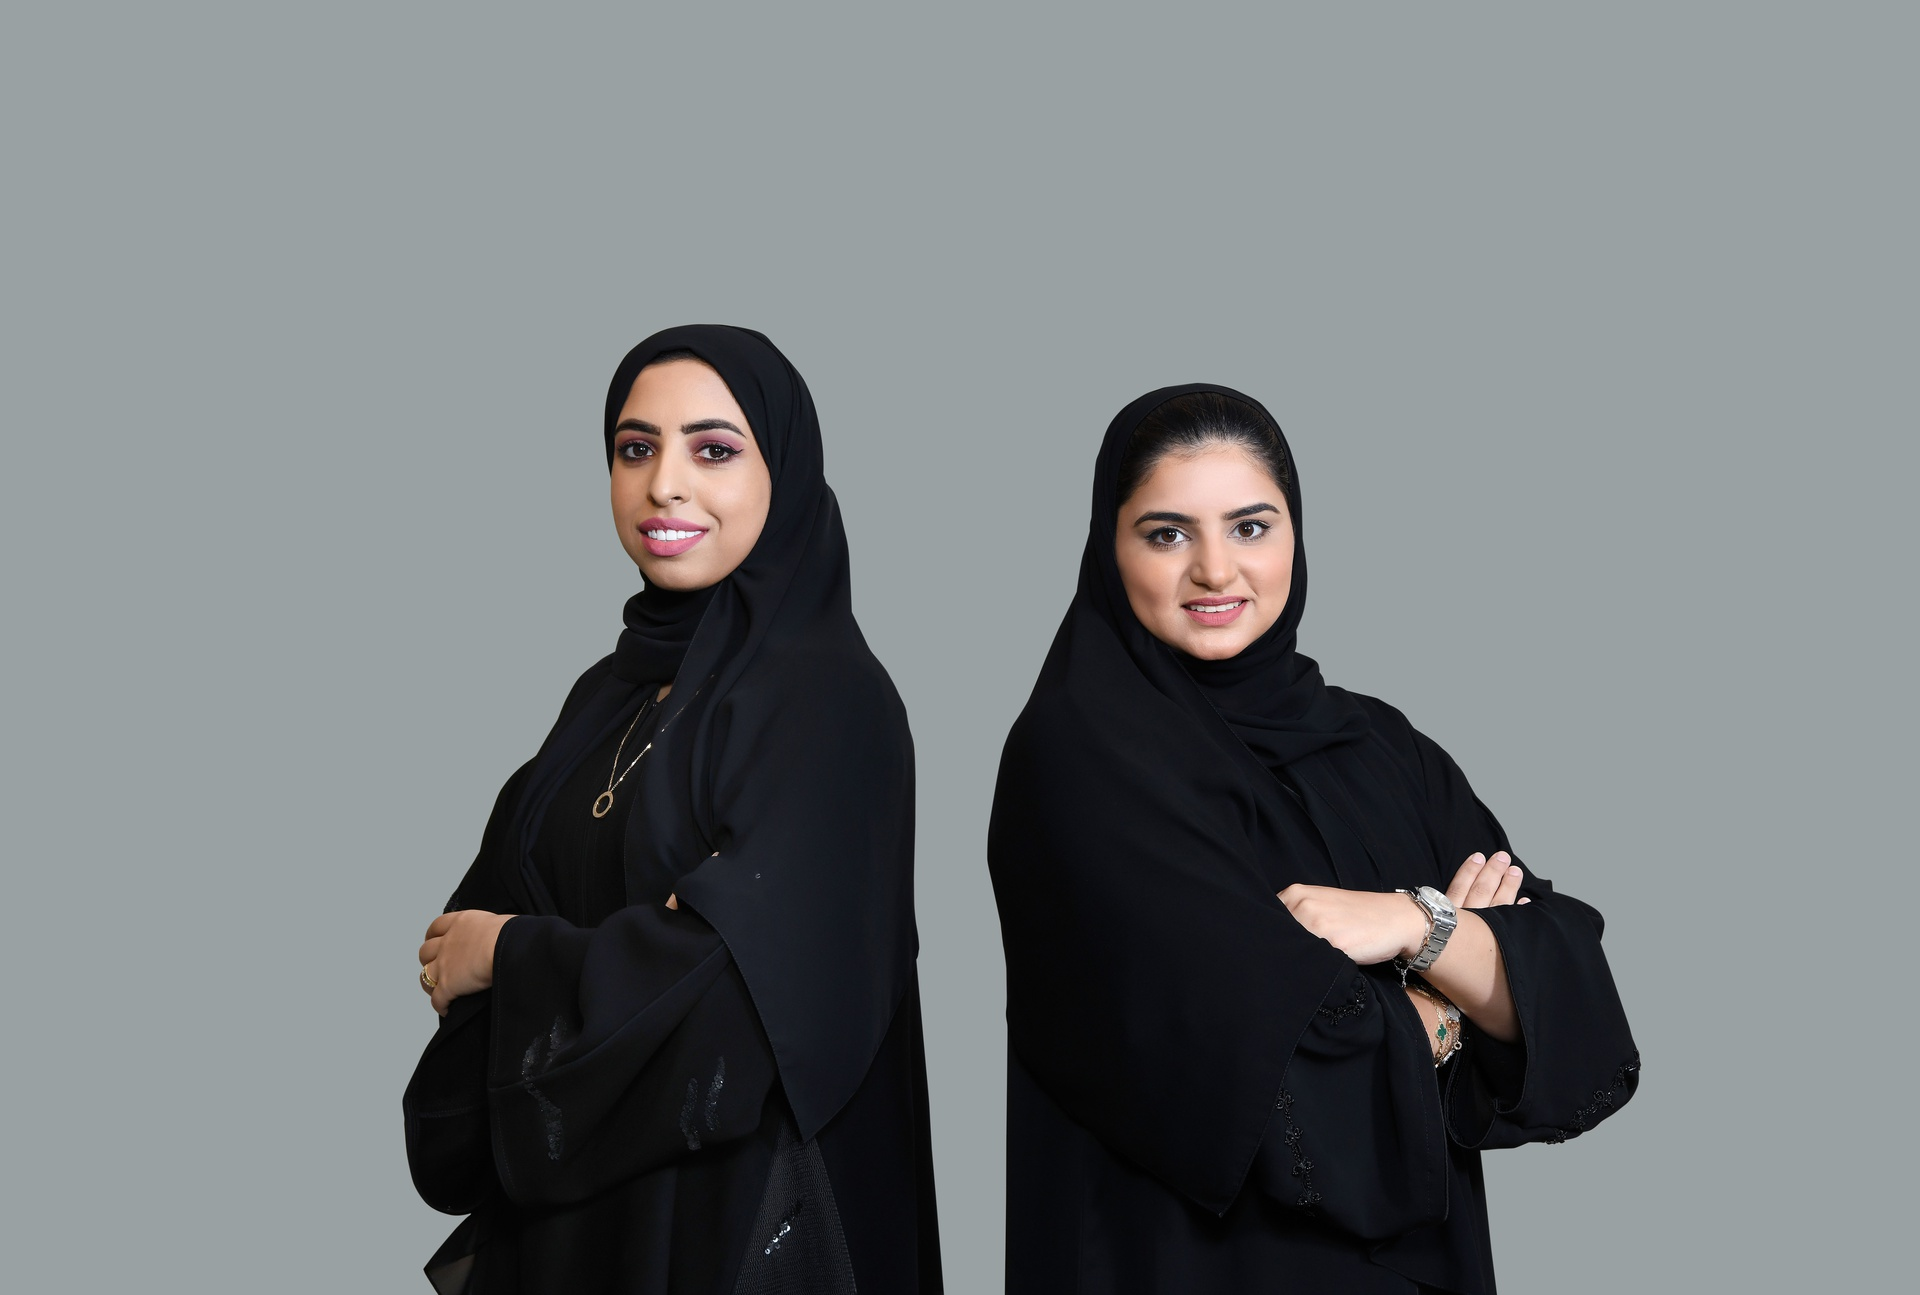 Emirates SkyCargo has announced the appointment of Alyazeya Saeed (right) and Fatma Ahli   (left) to the key positions of Cargo Managers of Oman and Kuwait respectively.